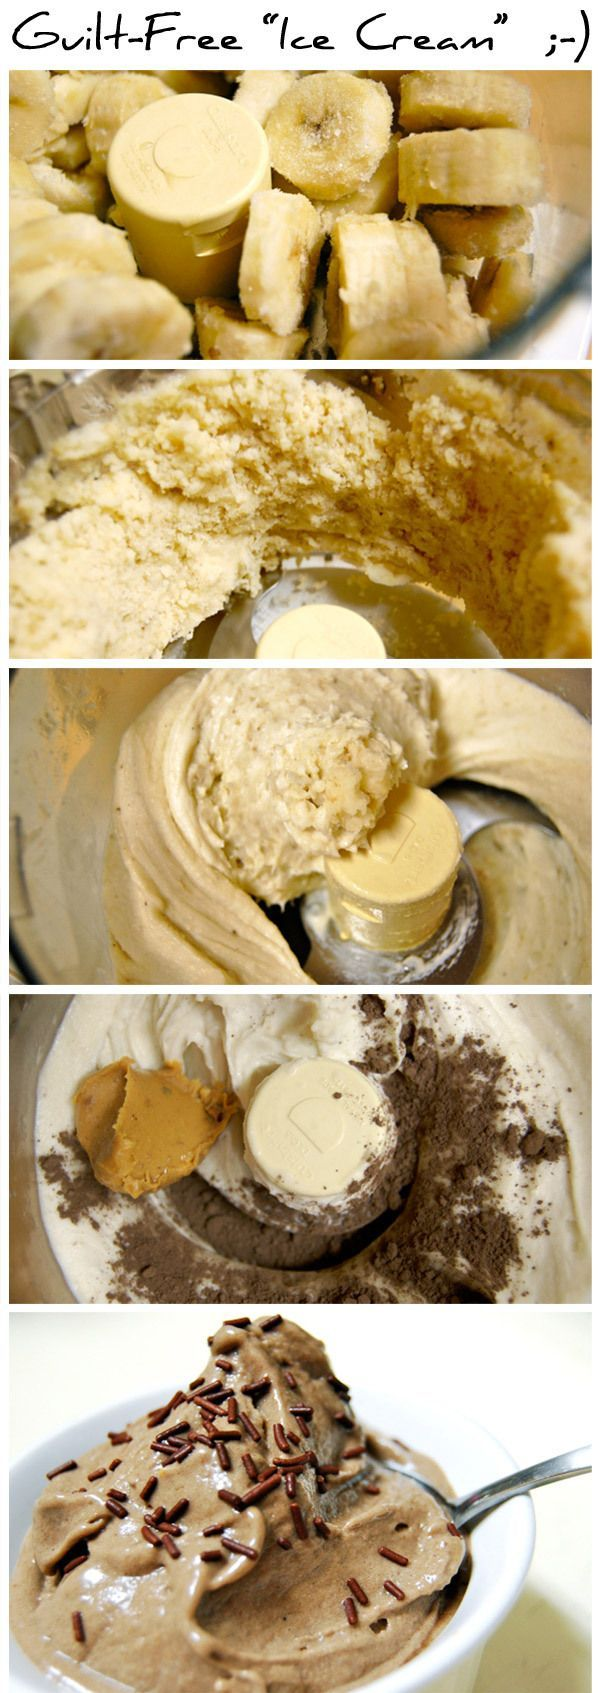 "Healthy ice cream: Guilt-Free ""Ice Cream""! No sugar. No dairy. This recipe really only requires: 3-4 bananas, sliced and frozen (slice before freezing) A spoonful of peanut butter 2-3 tsp. cocoa powder"